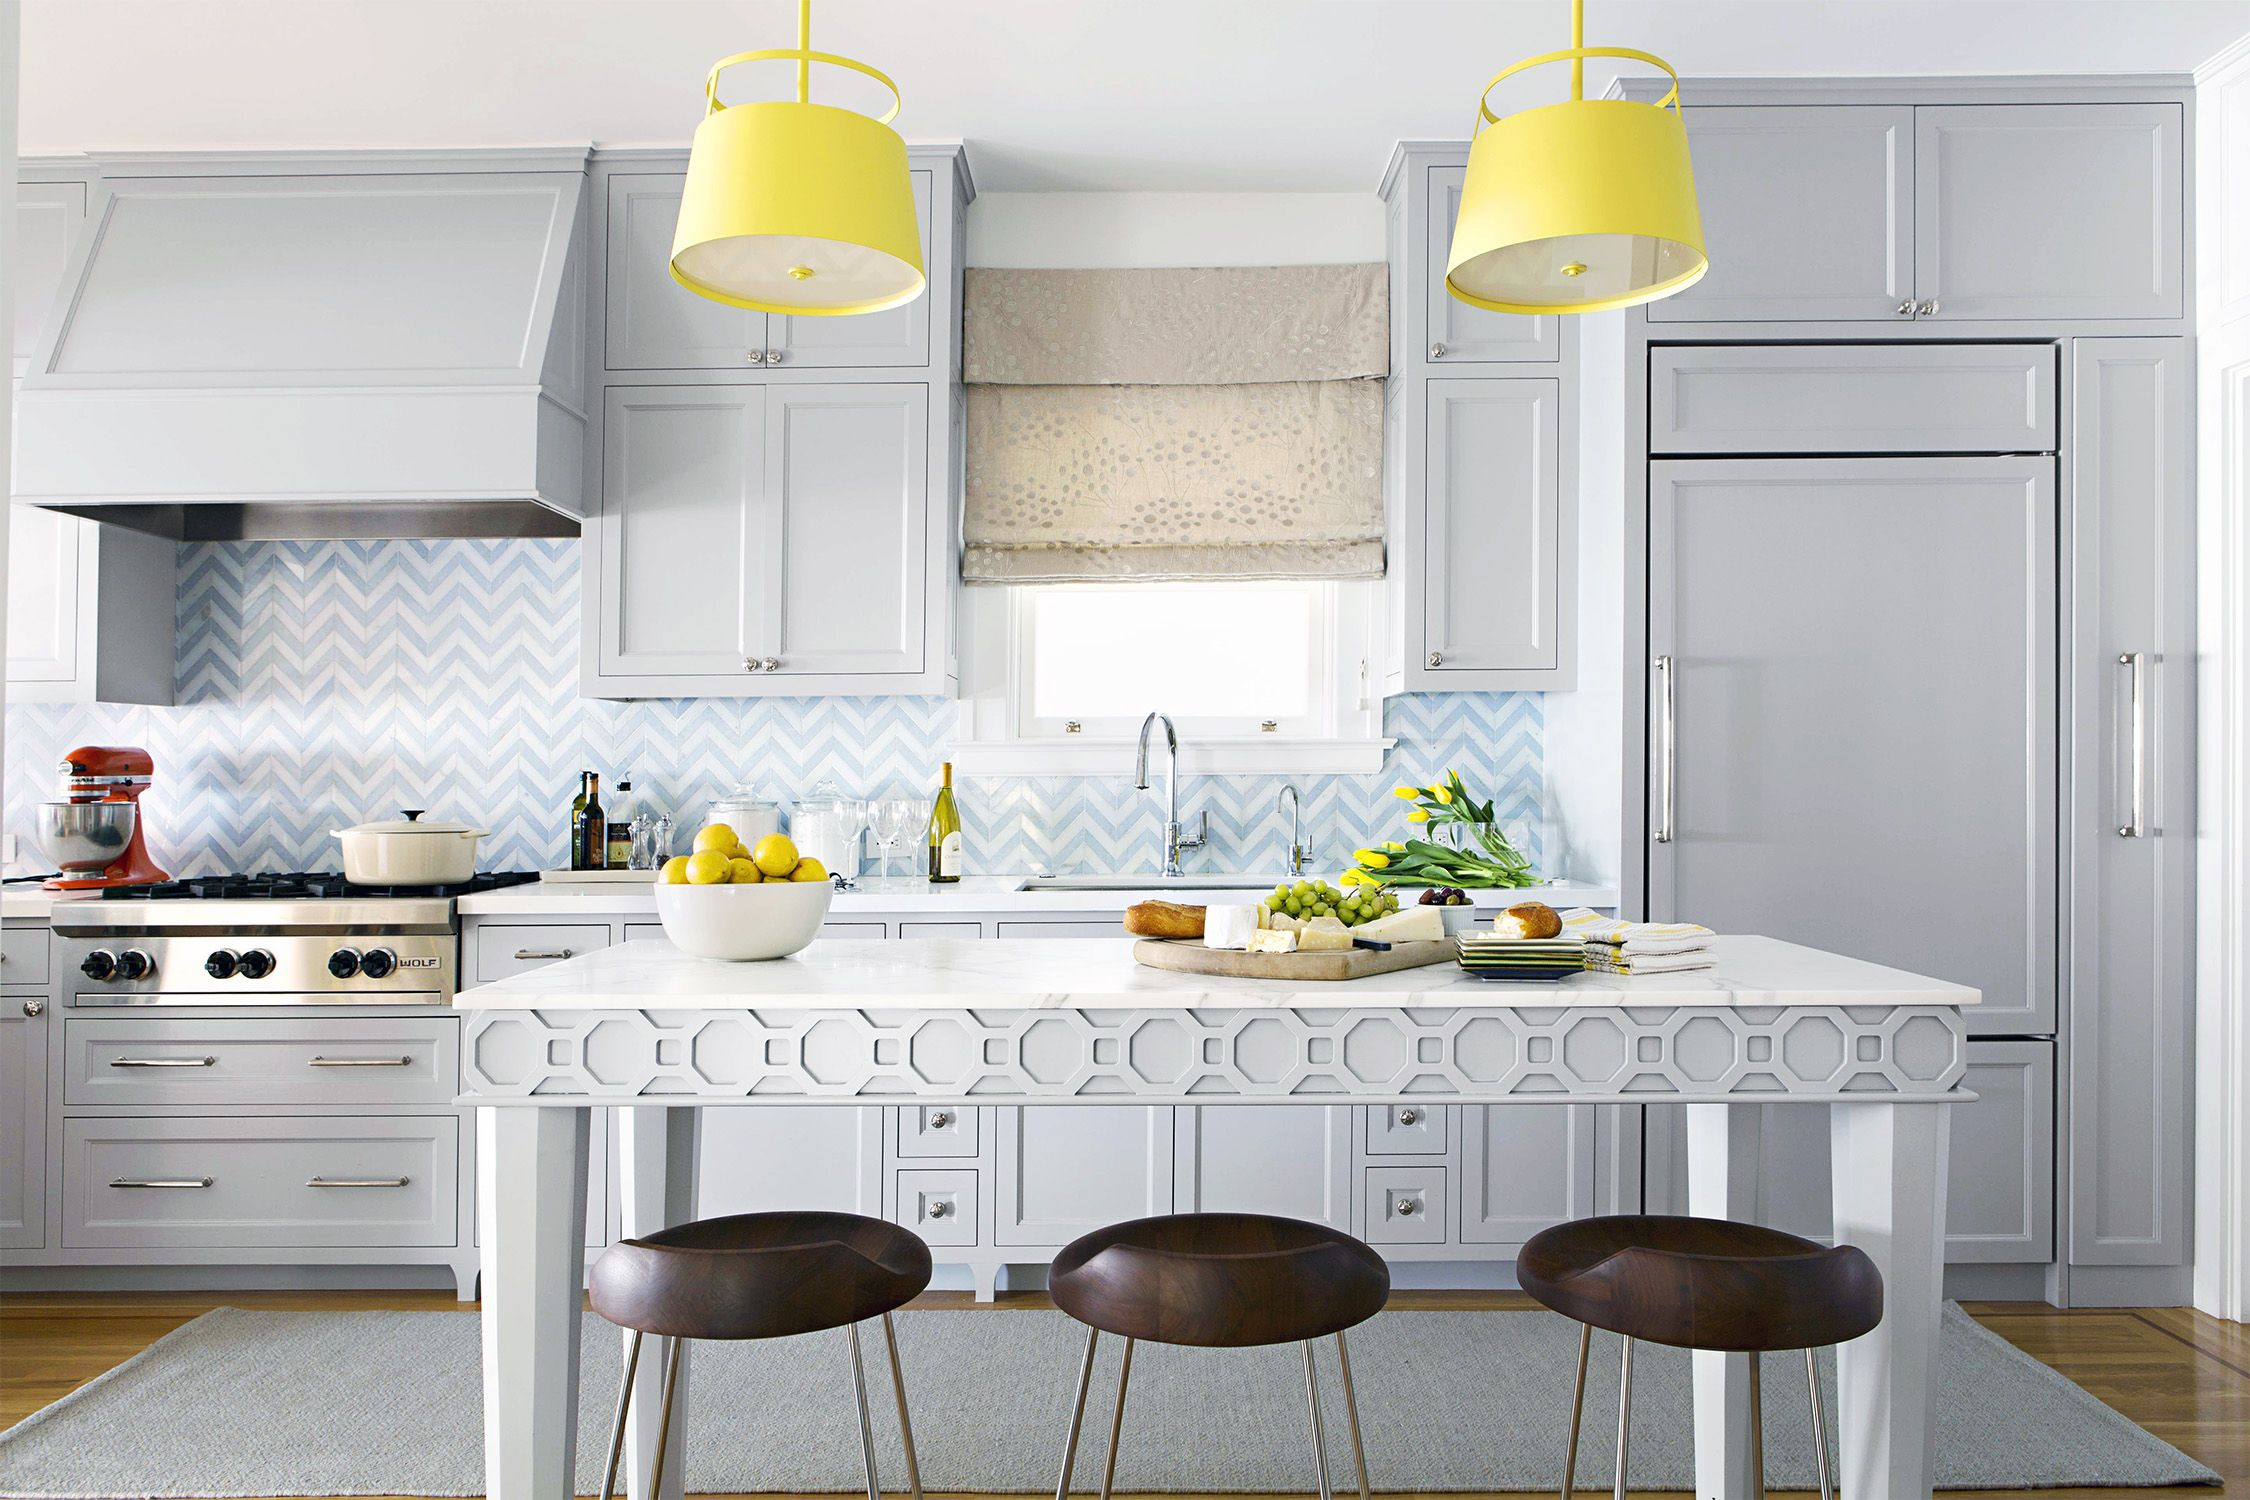 18 Best Kitchen Paint And Wall Colors Ideas For Popular Kitchen Color Schemes 2020